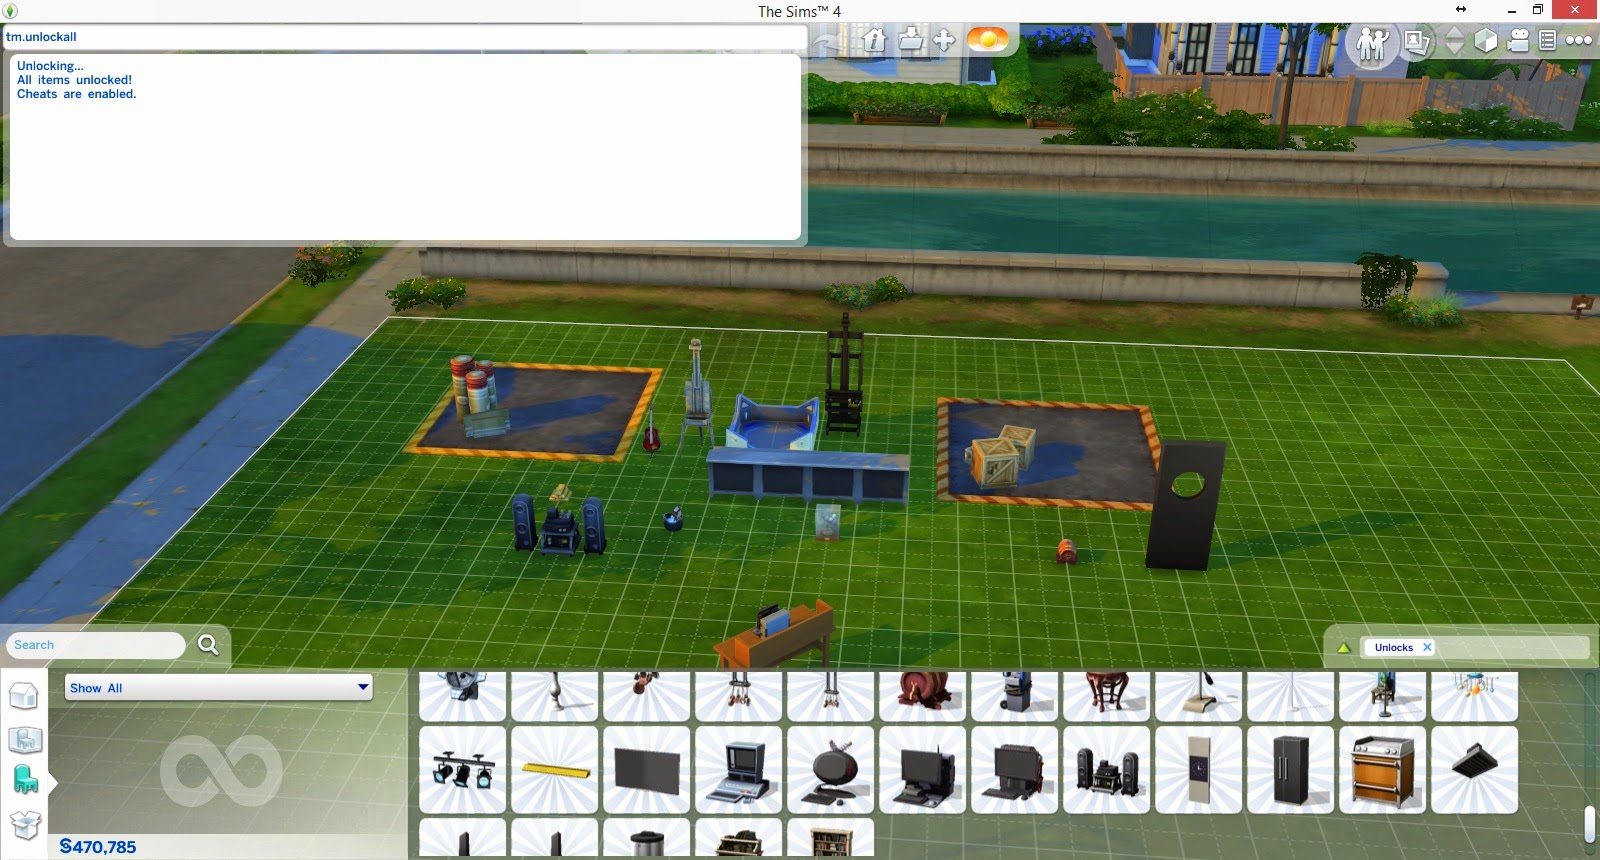 Sims  Build Mode Cheat S